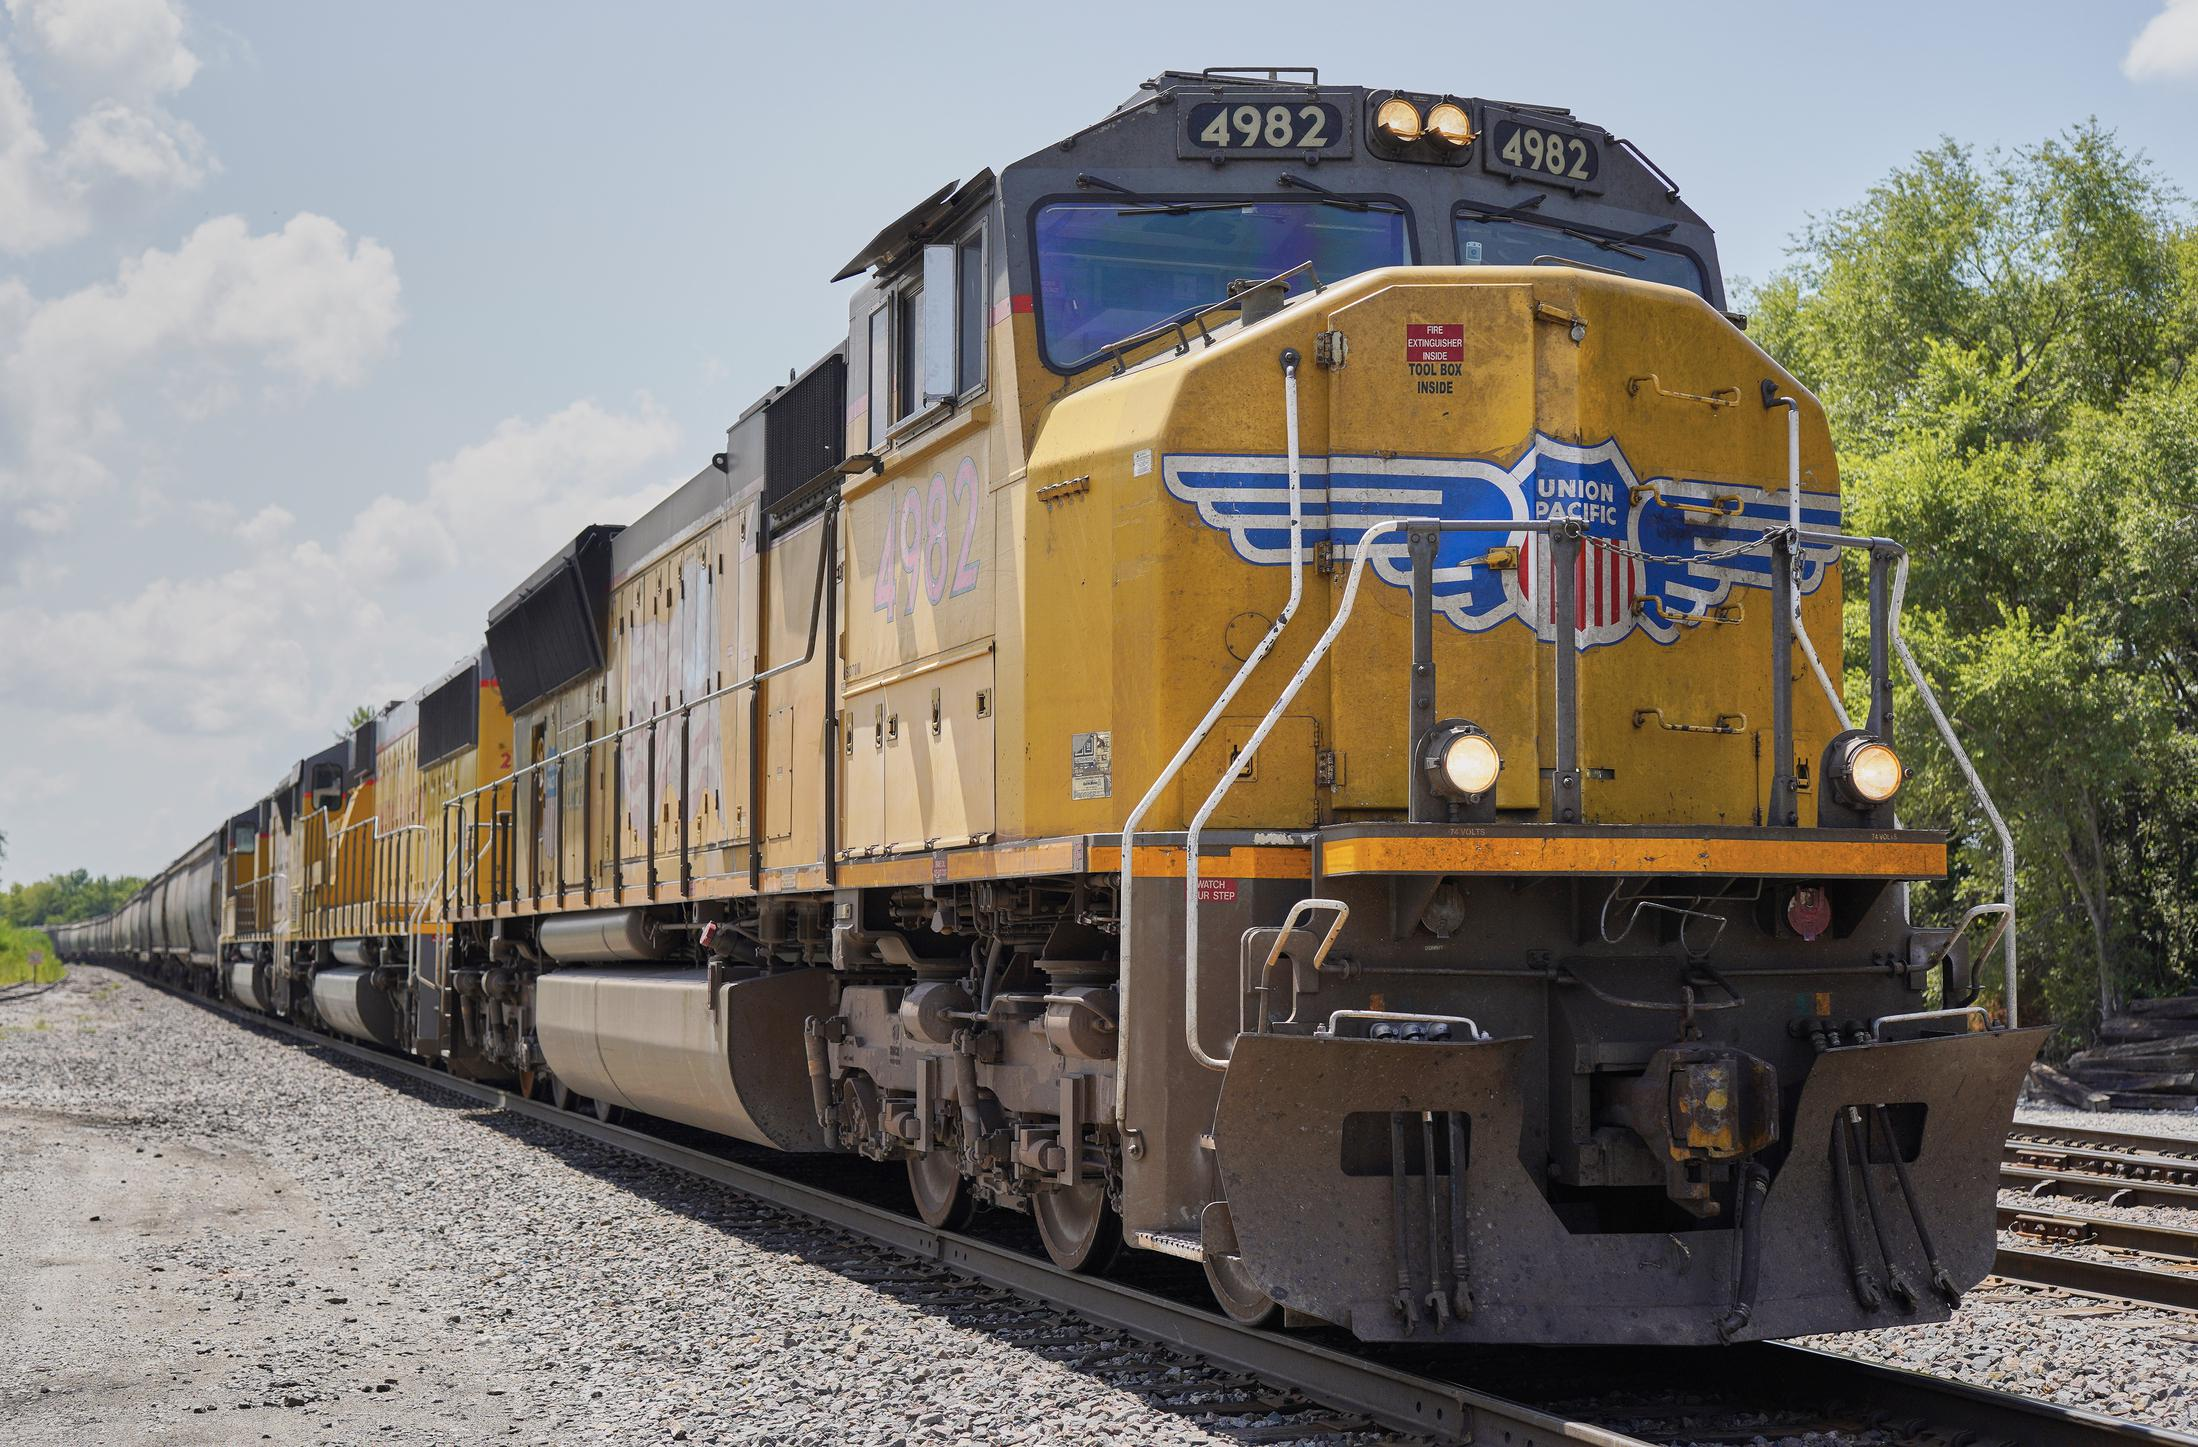 Union Pacific profit down 9% but economy will grow in 2021